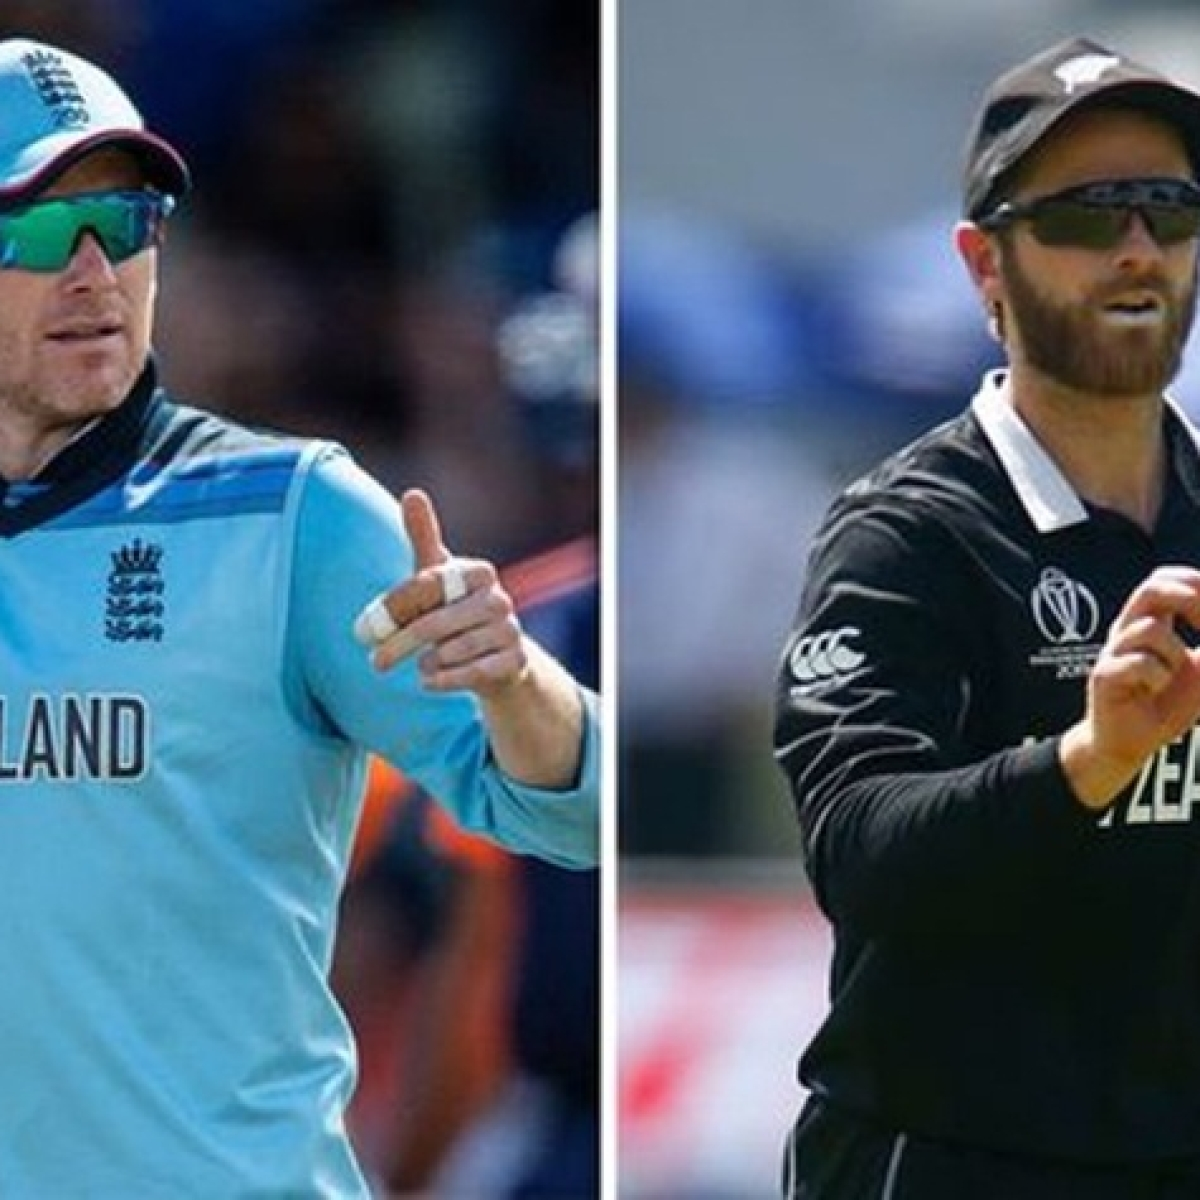 New Zealand vs England World Cup 2019 Final live telecast, online streaming, live score, when and where to watch in India